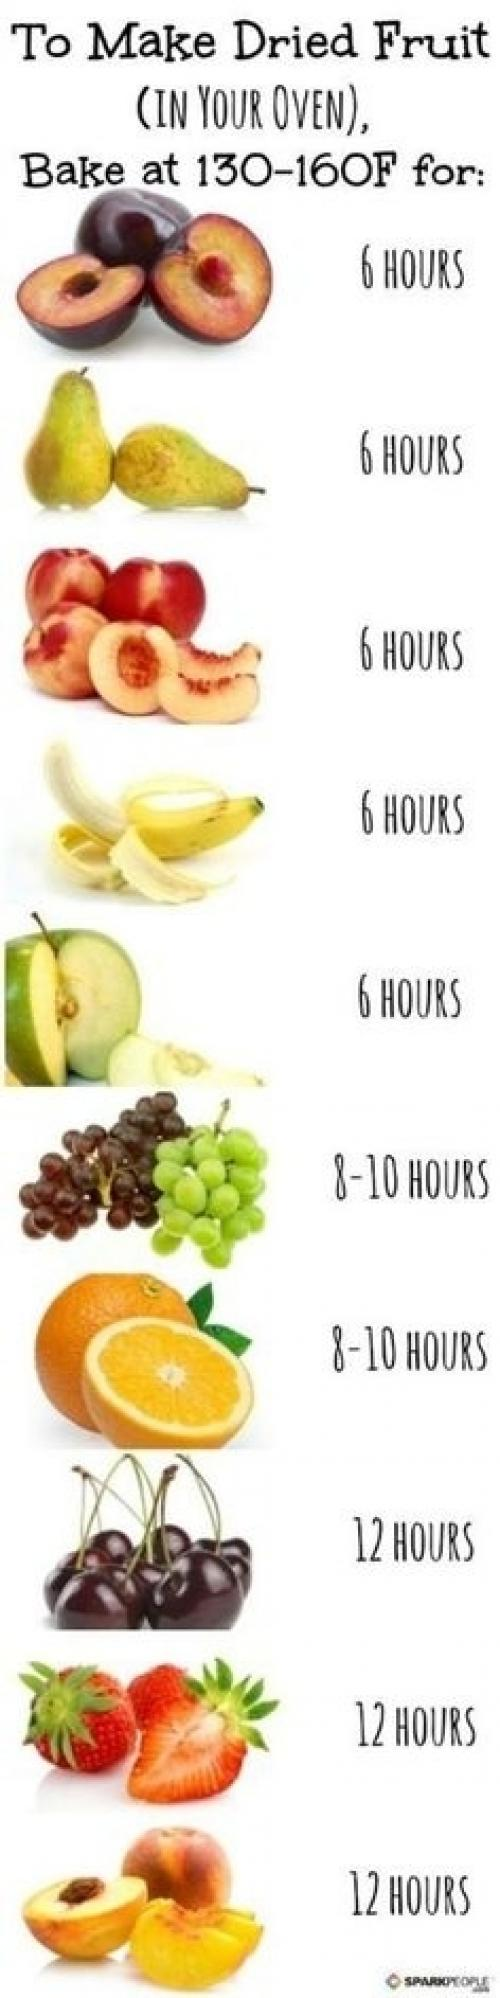 the-14-fruit-hacks-that-will-simplify-your-life-4